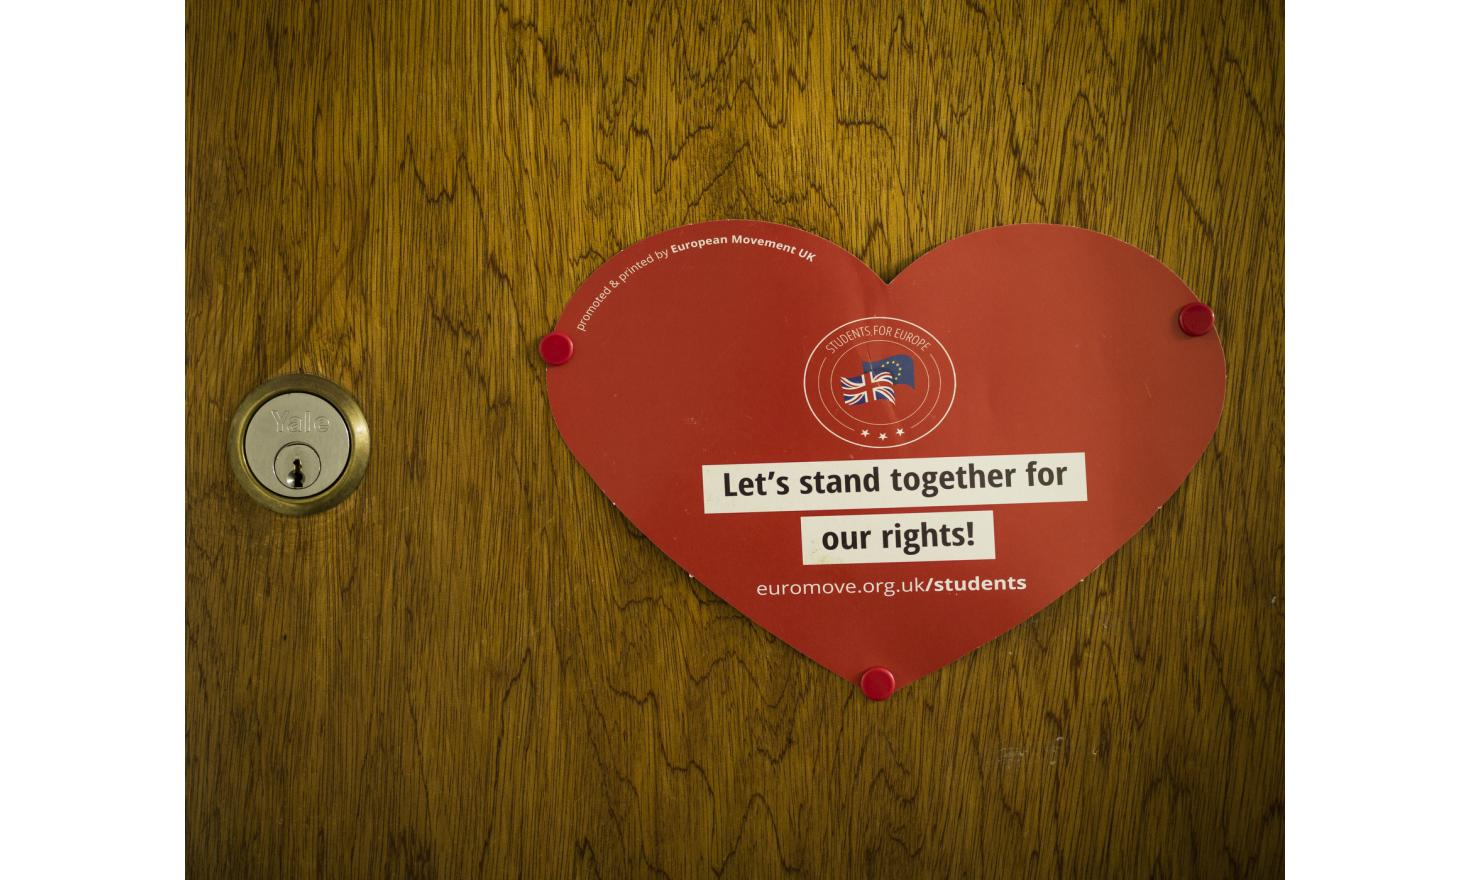 A heart-shaped poster embracing fighting in unity for the rights of British and European people, on the locked door of Claudio Radaelli, Profesor of Political Science at Exeter University.